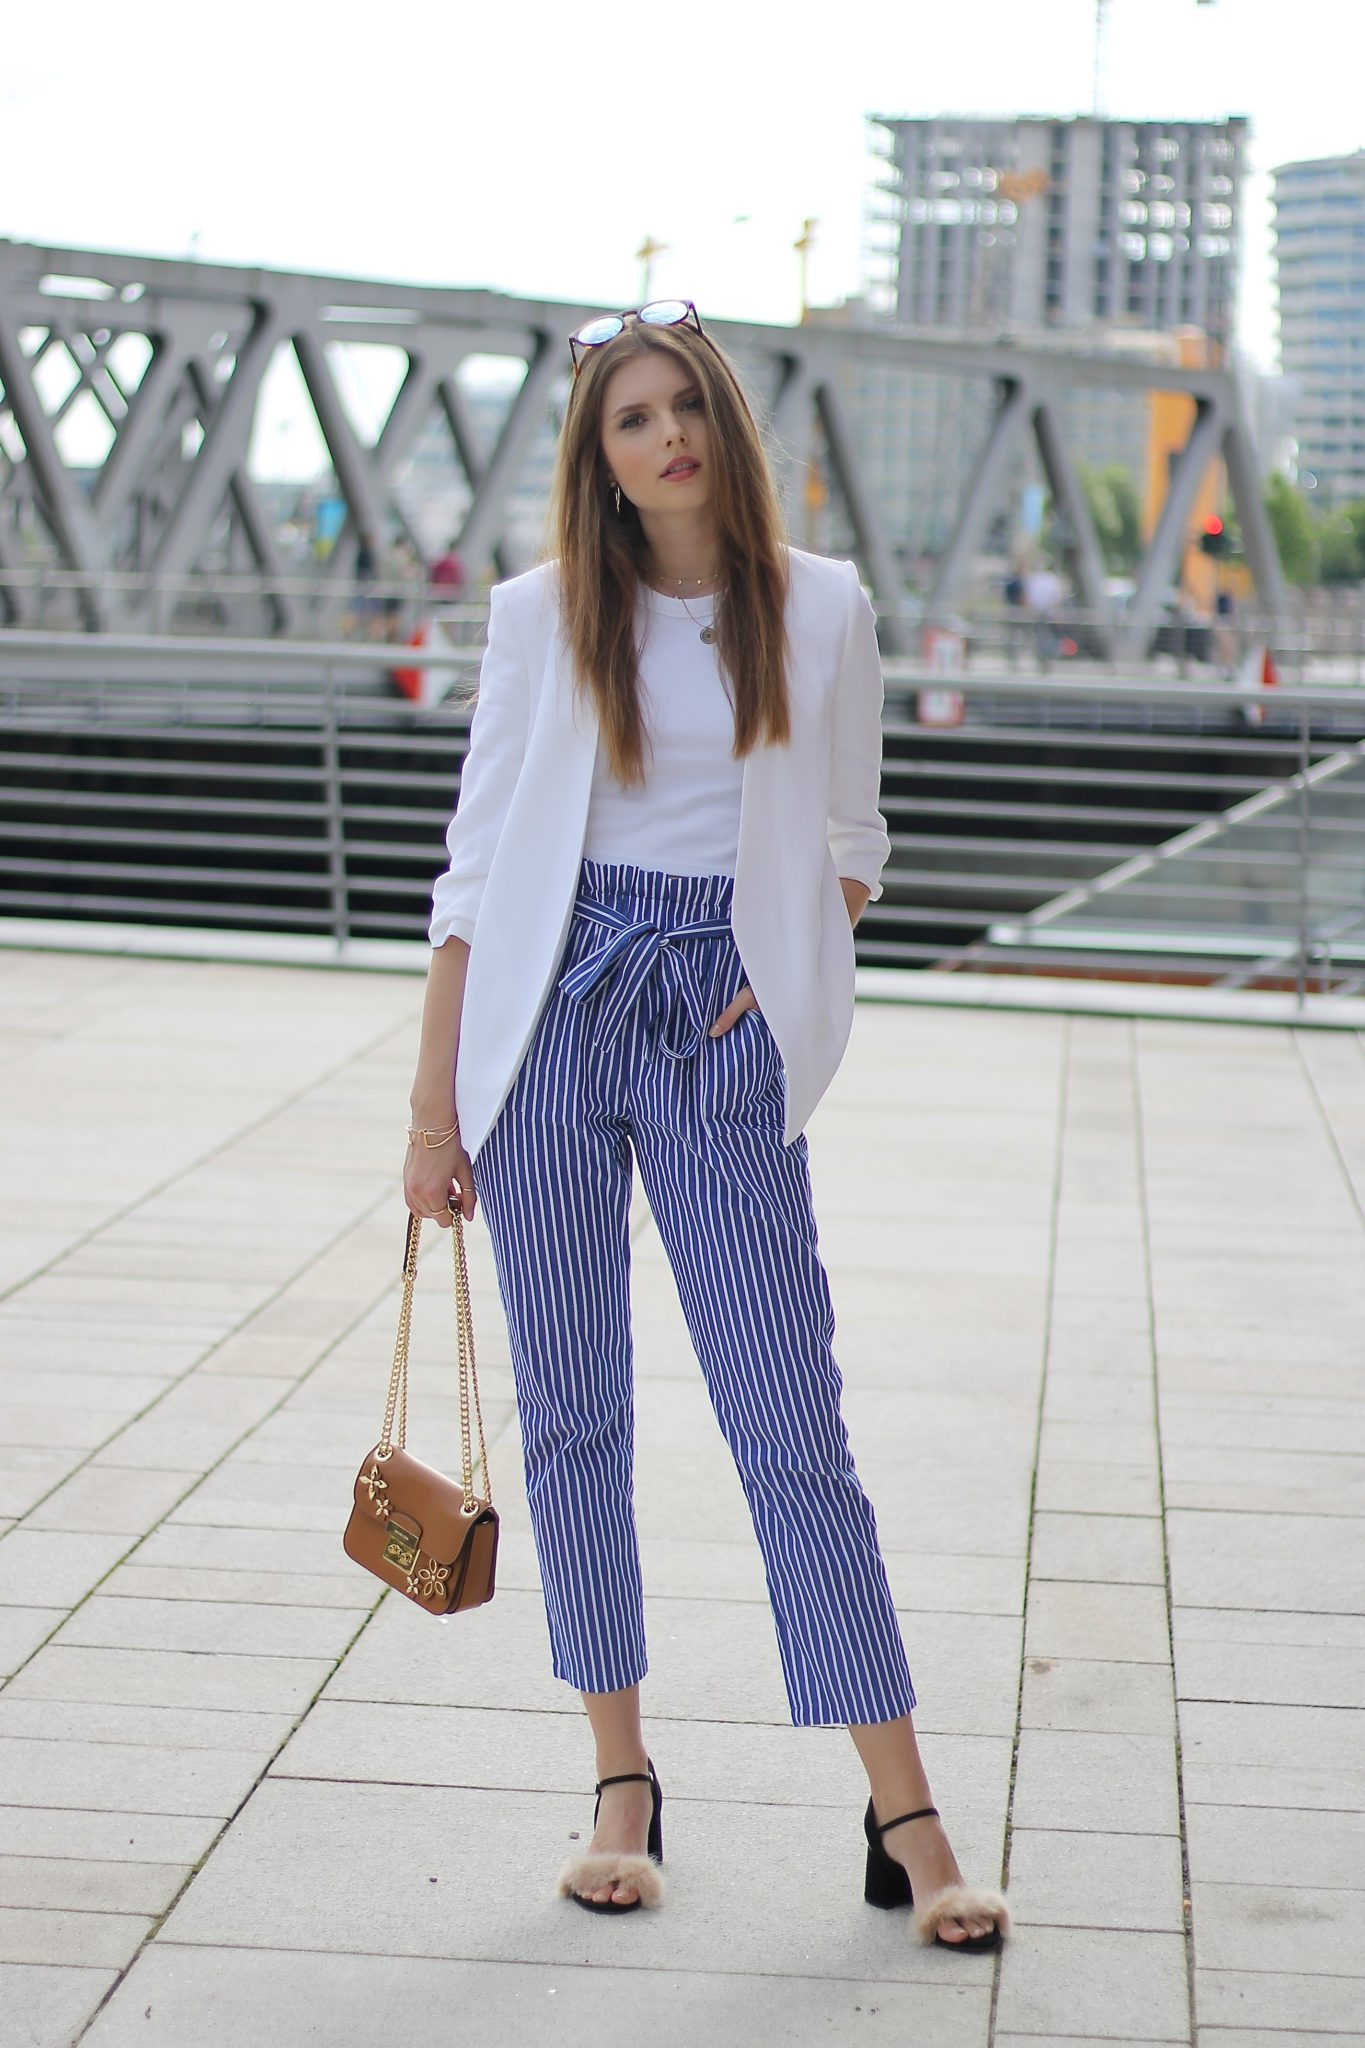 IMG 8237 2 - CASUAL STRIPED PANTS I HAMBURG STREETSTYLE